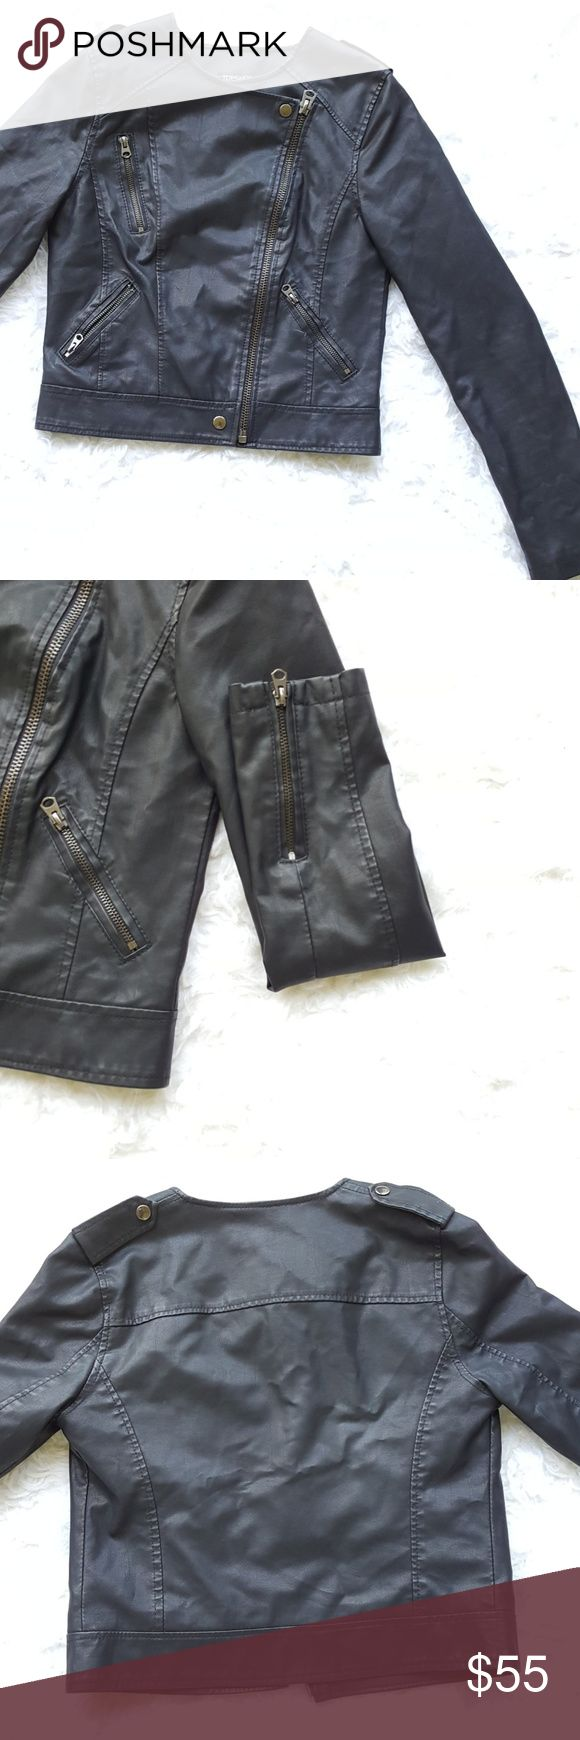 TopShop Faux Leather Bicker Jacket TopShop Faux Leather Bicker Jacket .Jacket has two small pockets on front as well as a zipper that goes down the middle. Also has a zipper on each wrist.  I'm great condition. Small amount of wear on the inside. Topshop Jackets & Coats